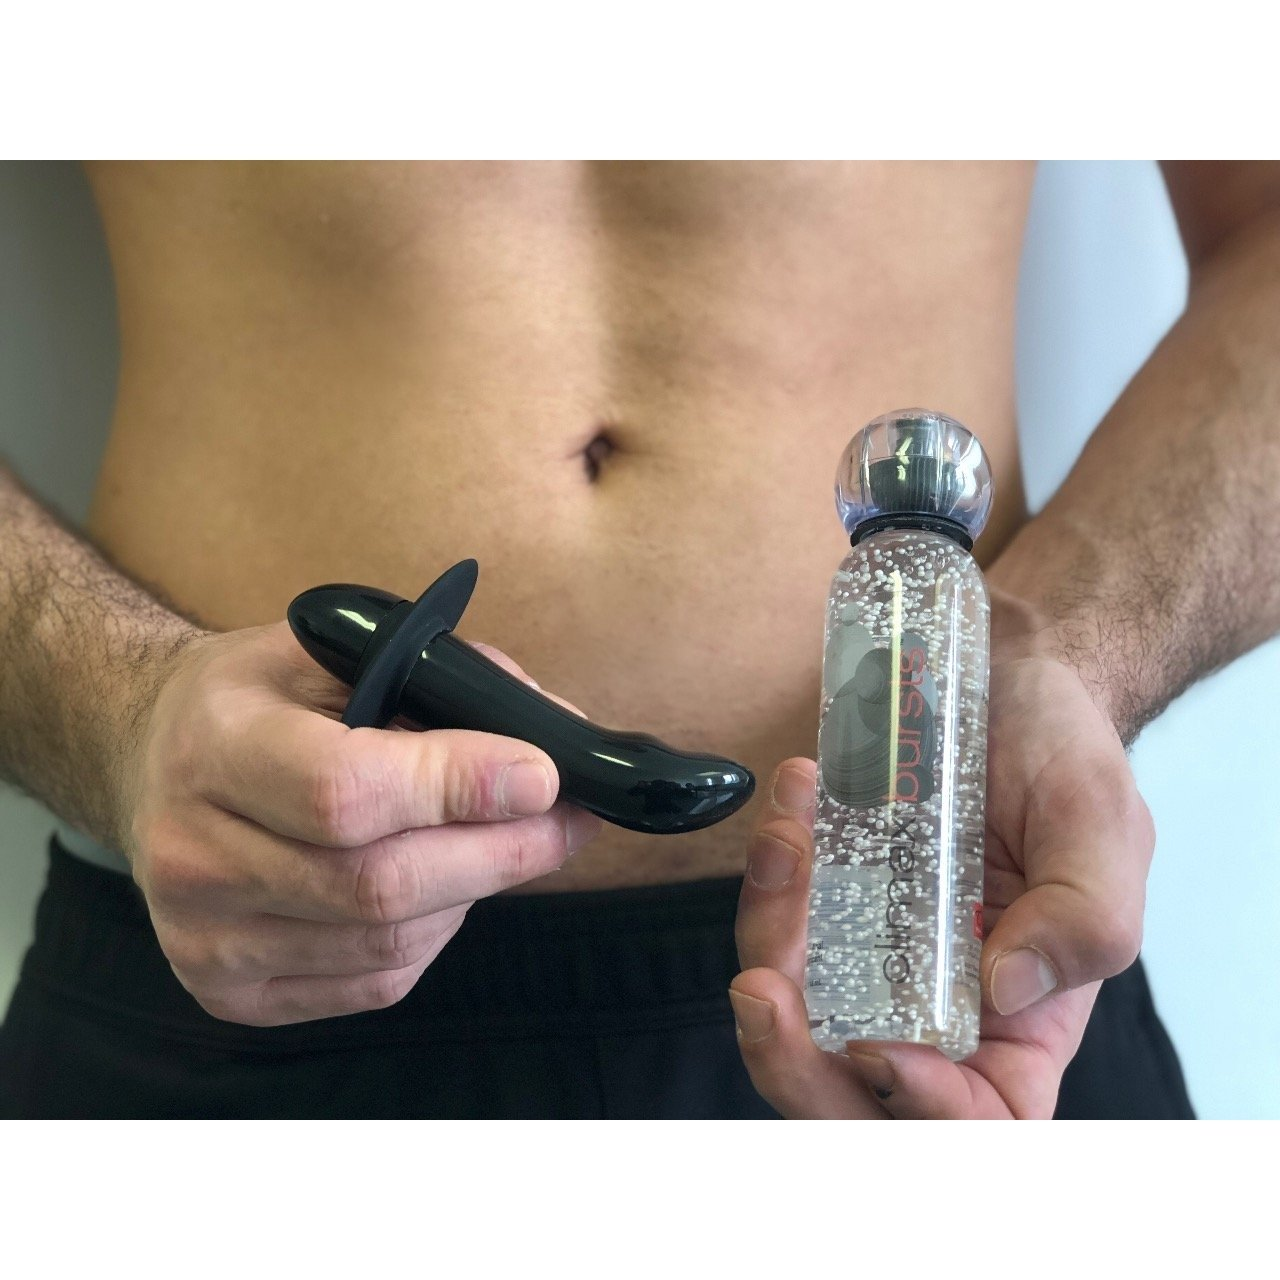 Quest Prostate Bullet + Free Climax Bursts Lube - Gay Men's Sex Toys - Adam's Toy Box